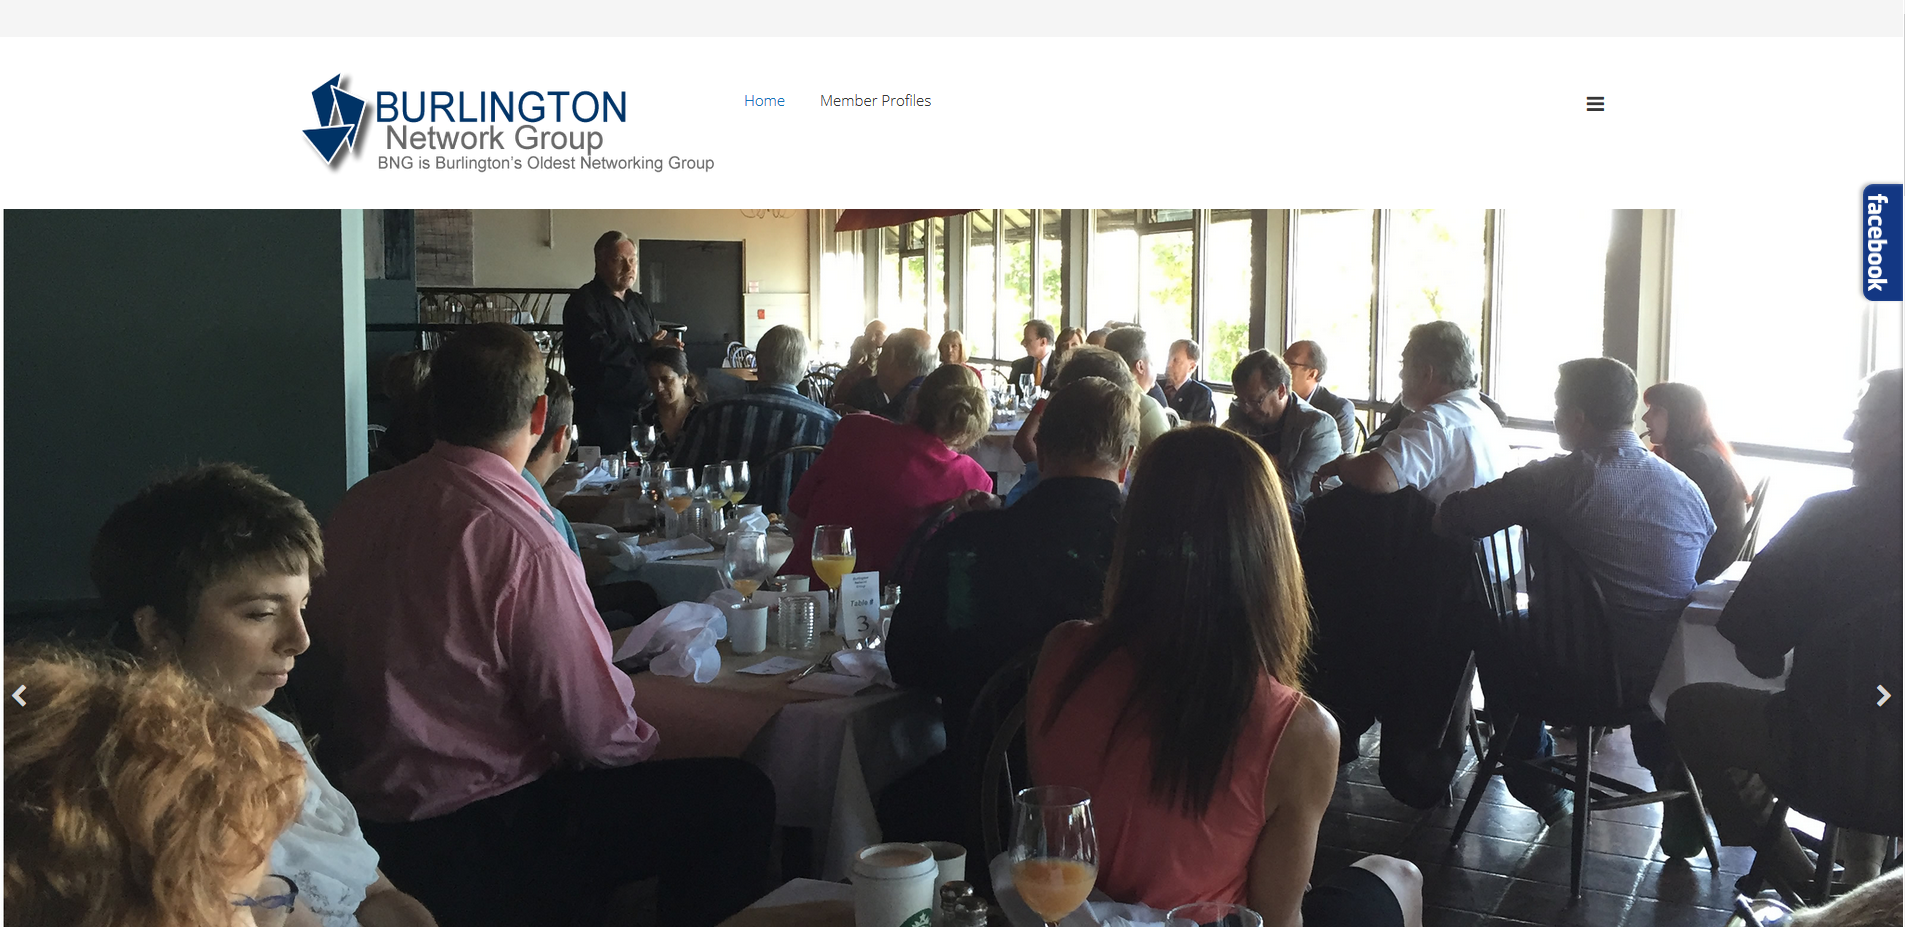 Autumnfire Launches new website for The Burlington Network Group